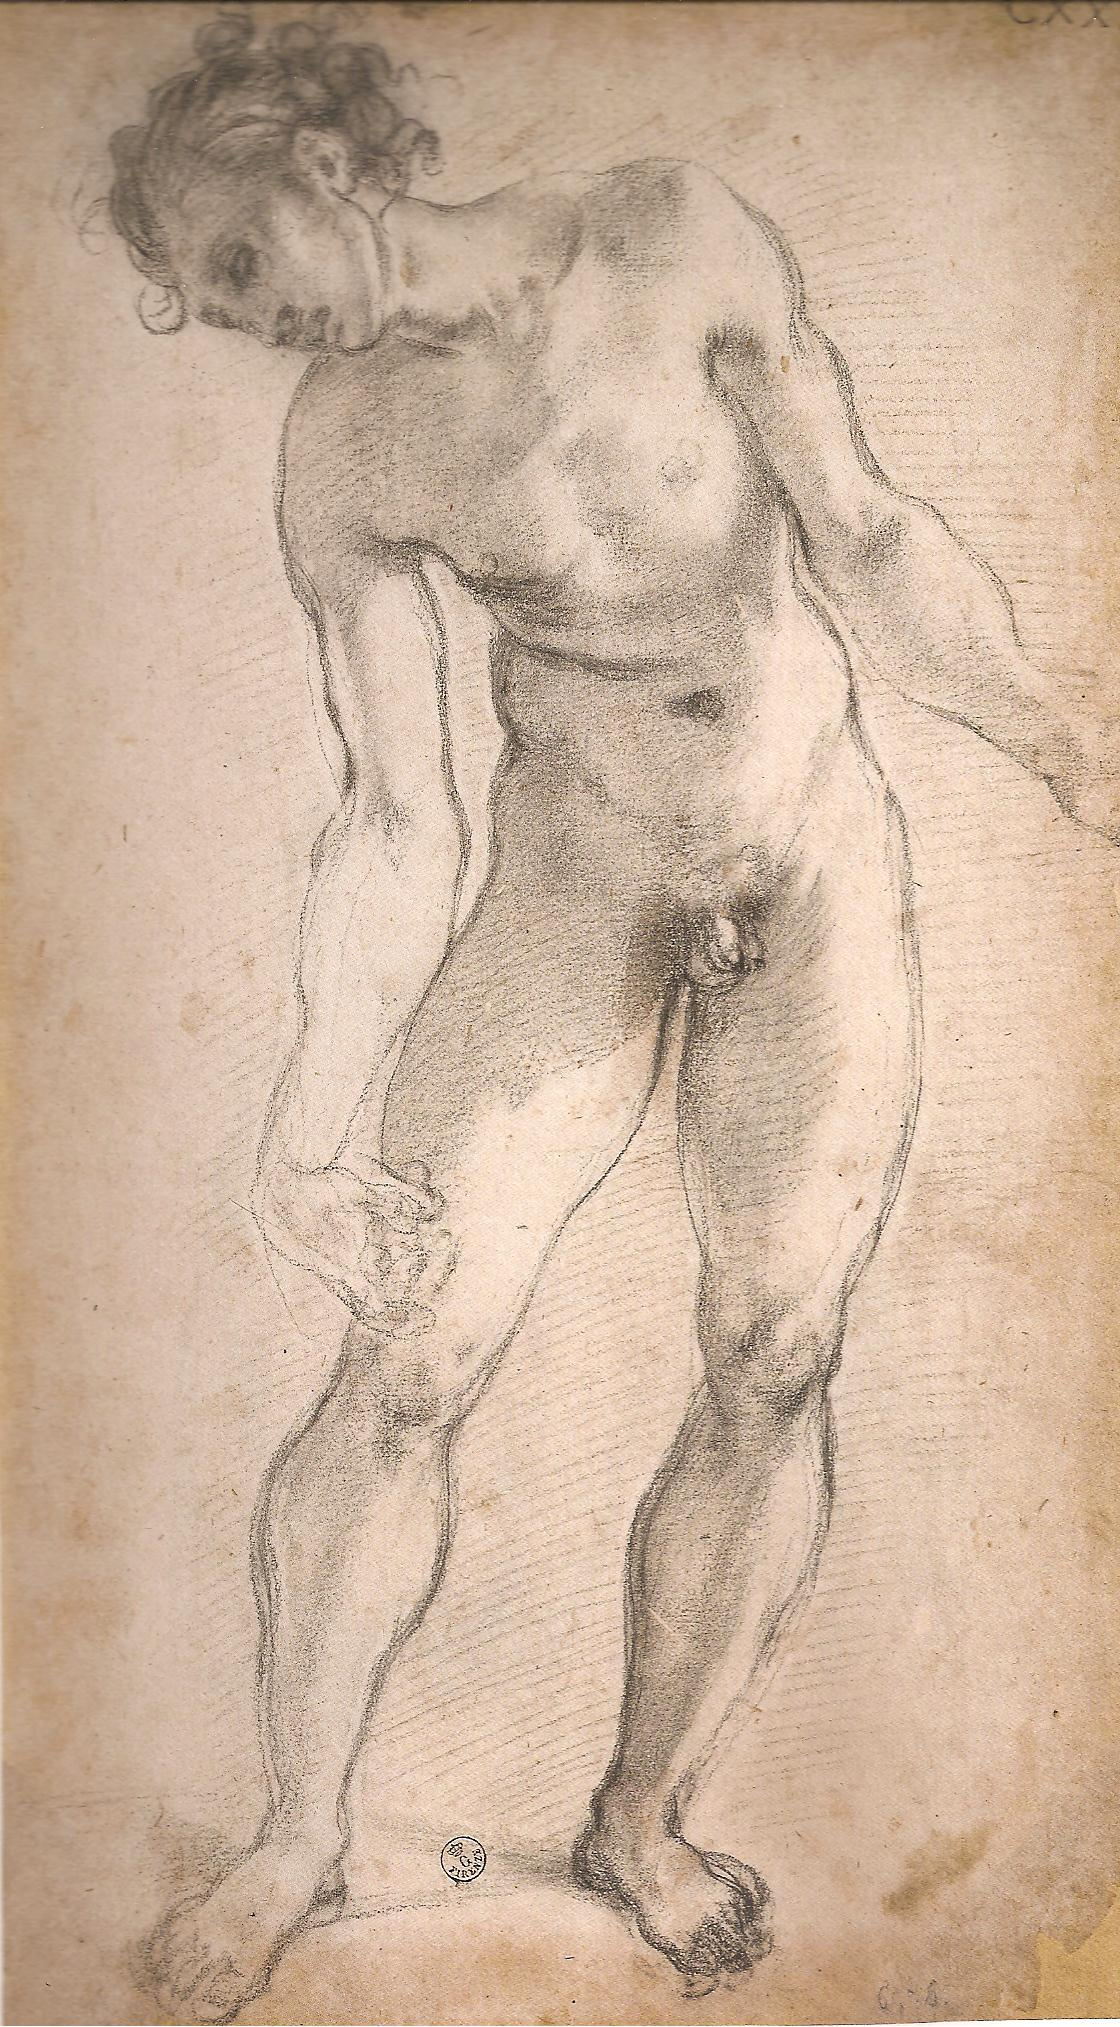 STUDY 1526 FOR A FIGURE IN 'THE DEPOSITION FROM THE CROSS' IN THE CAPPONI CHAPEL, FLORENCE. THE LOOSE LINES EMBODY EMOTION. DRAWN WHEN THE ARTIST WAS 32. CHARCOAL ON PAPER (DRAWING IN GALERIA DEGLI UFFIZI, FLORENCE)